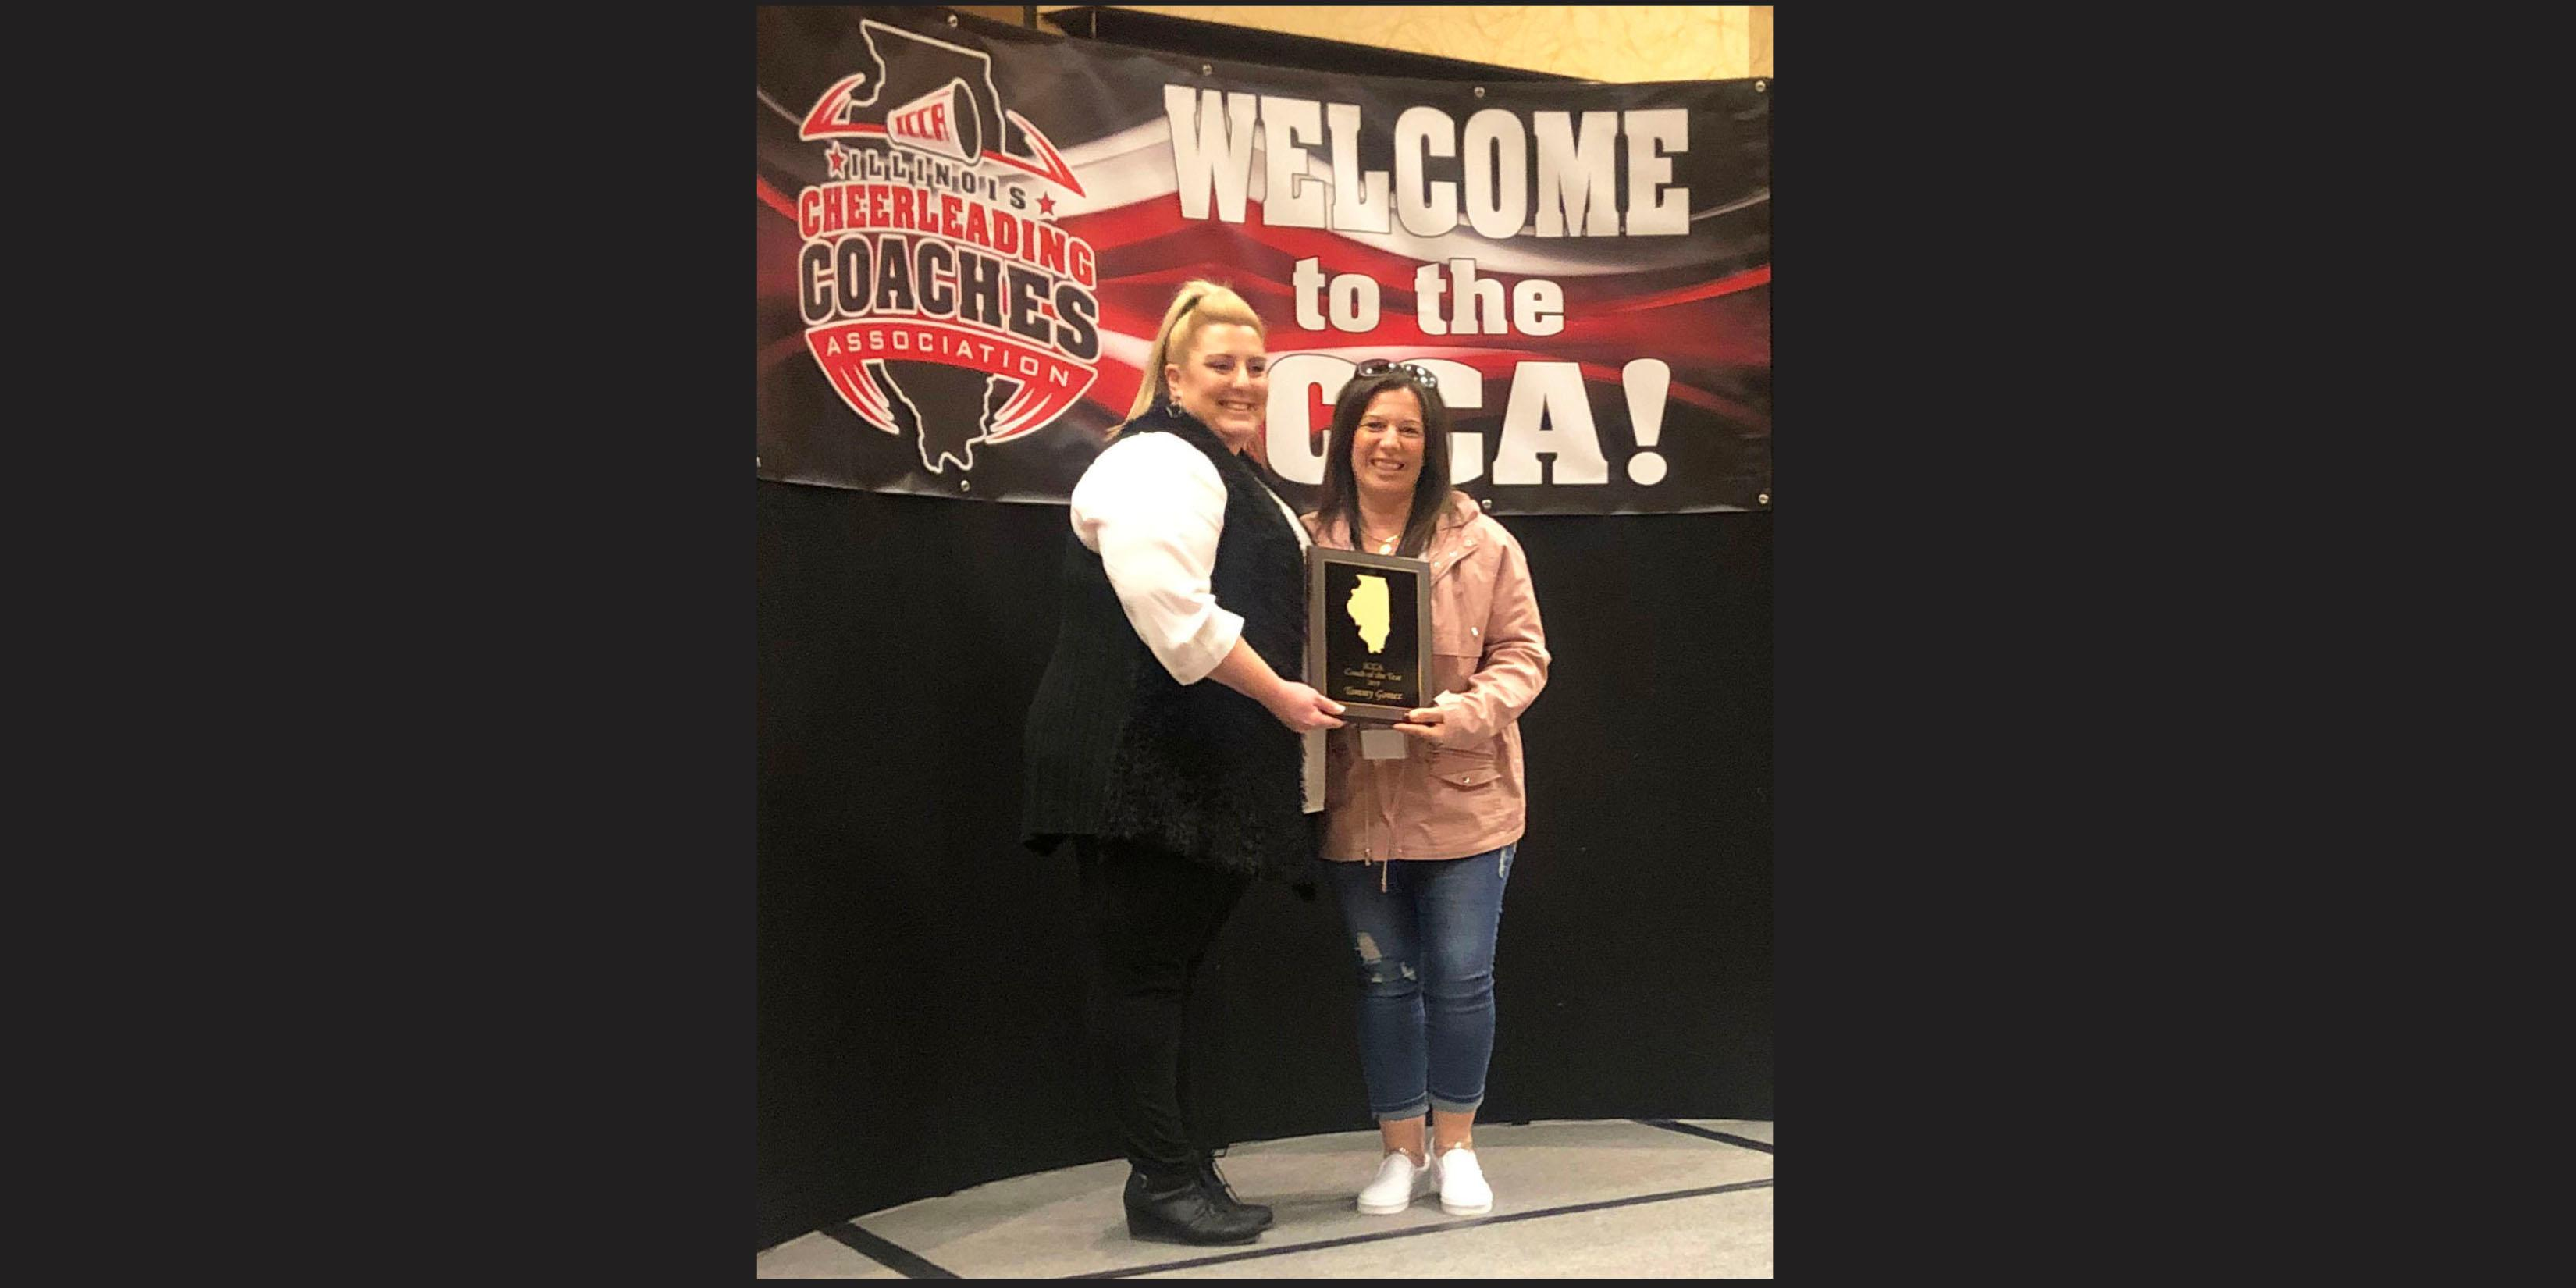 Addison Trail cheerleading coach named ICCA Coach of the Year